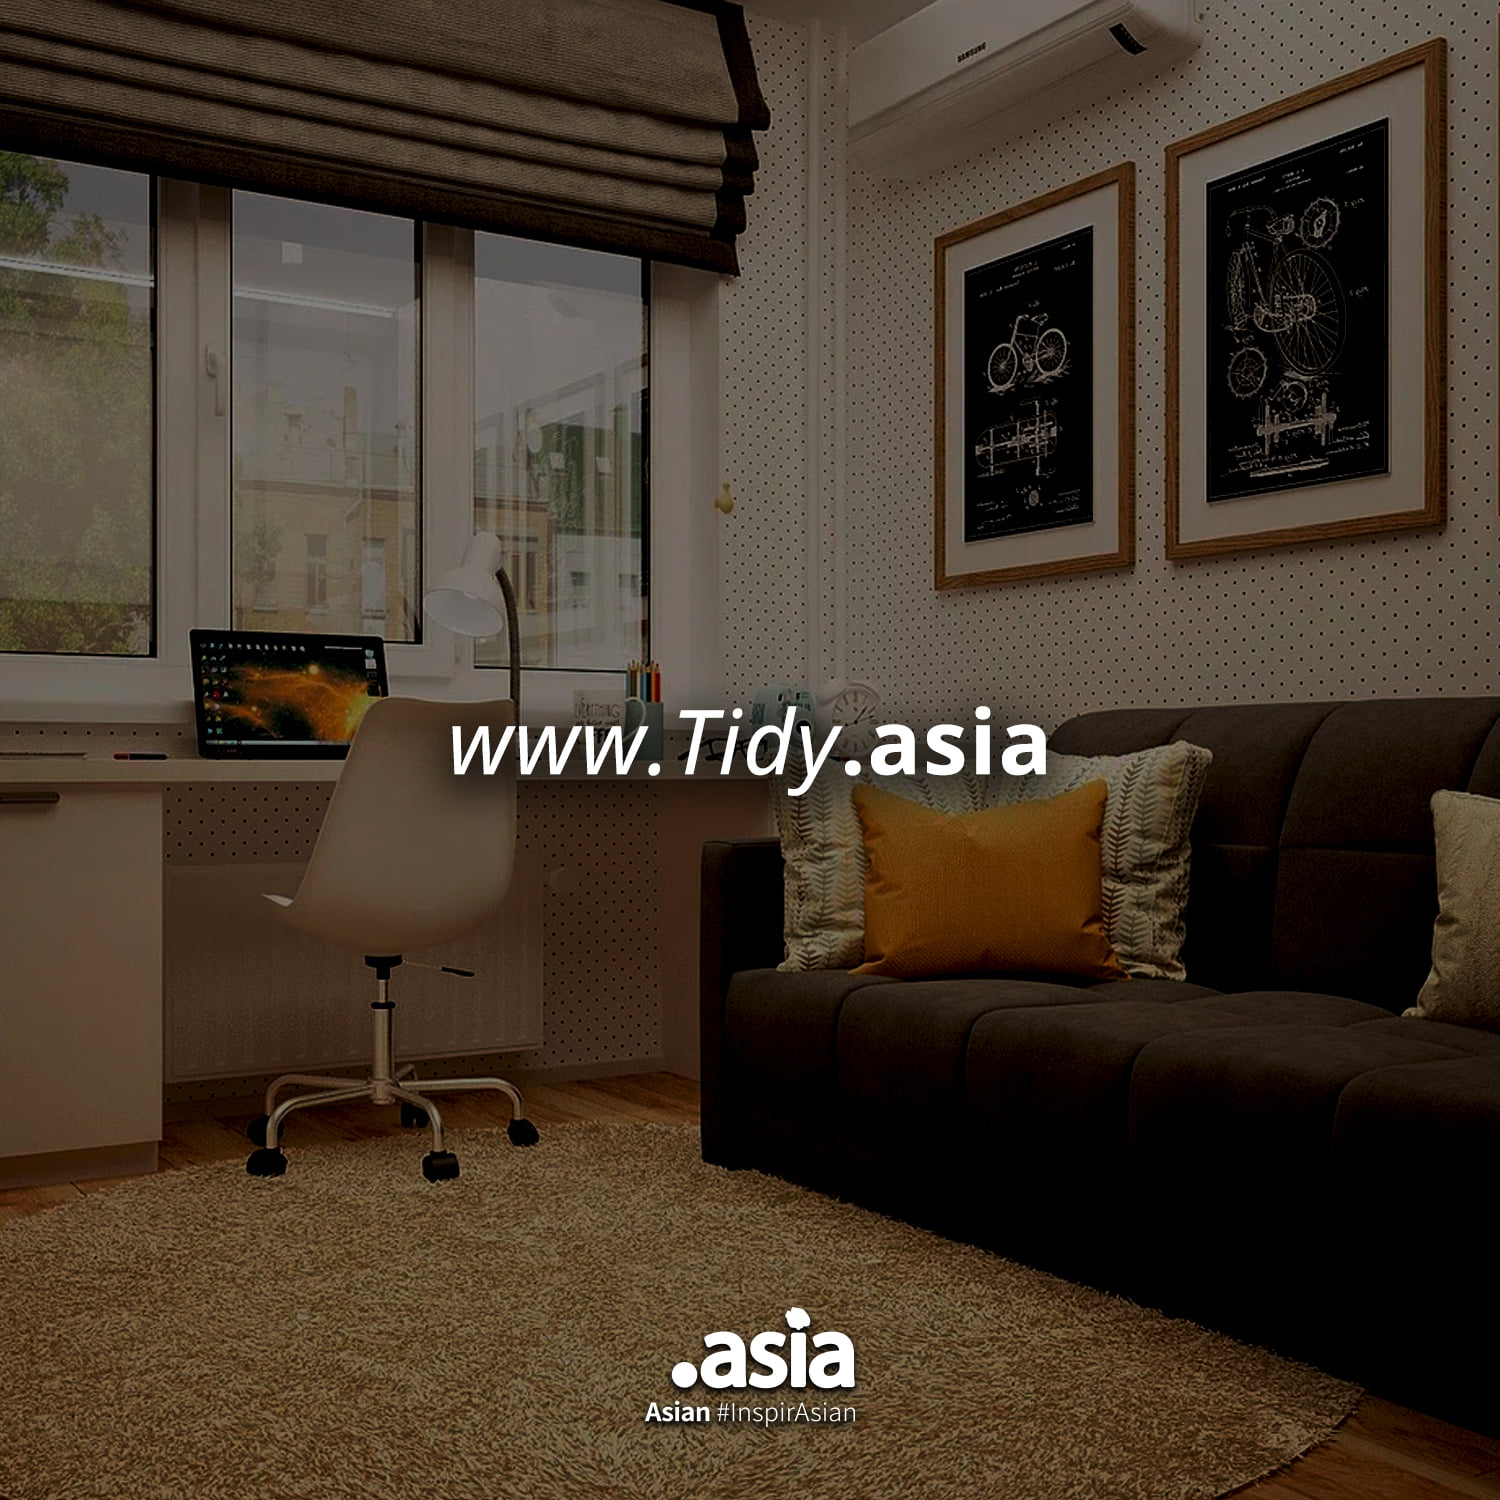 Domain spotlight: tidy.asia